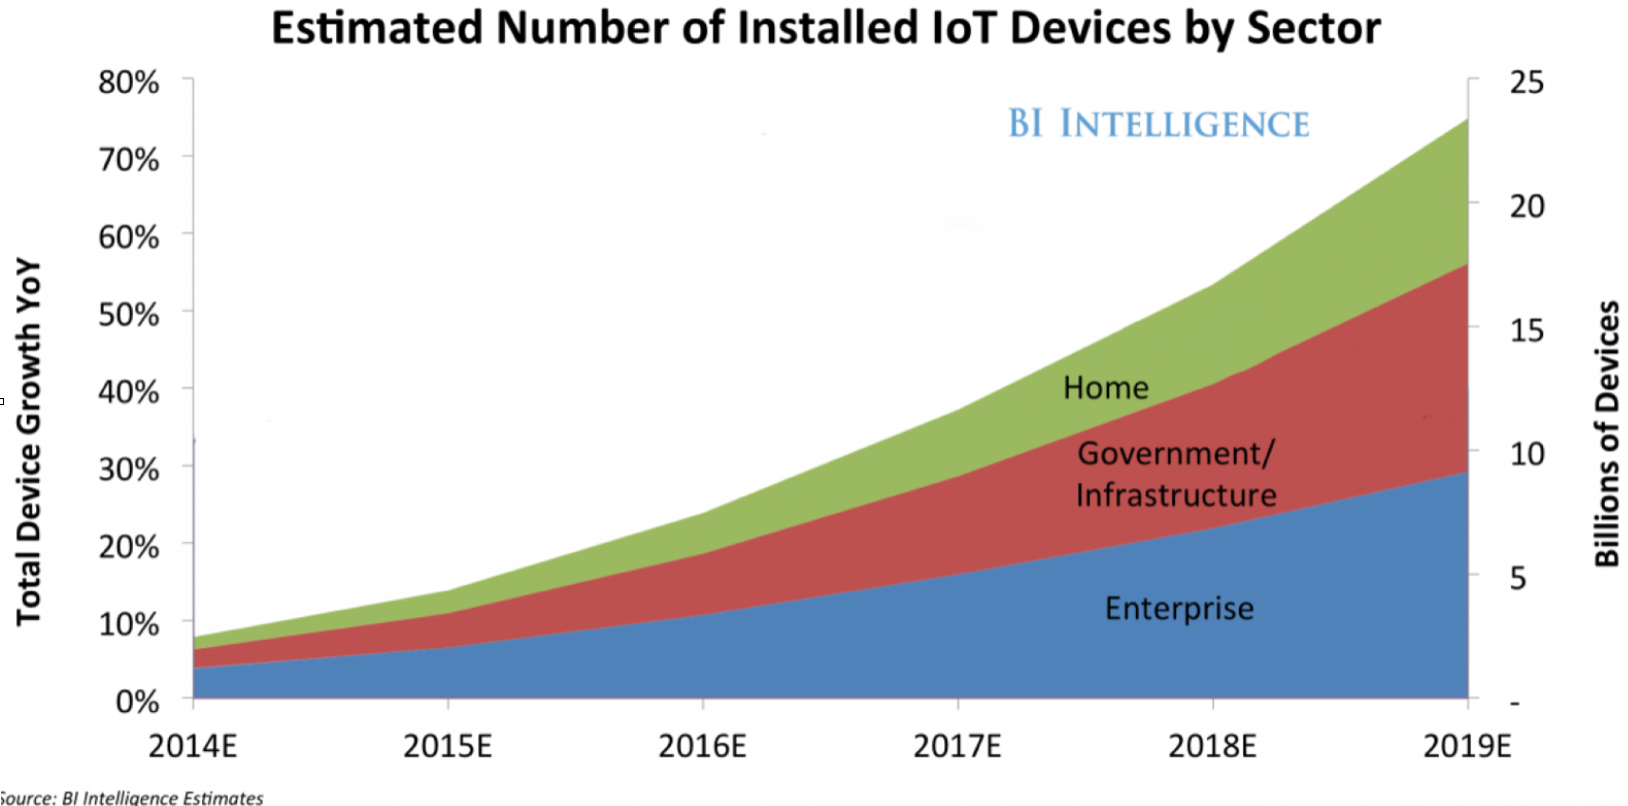 Crescita stimata del settore Internet of Things